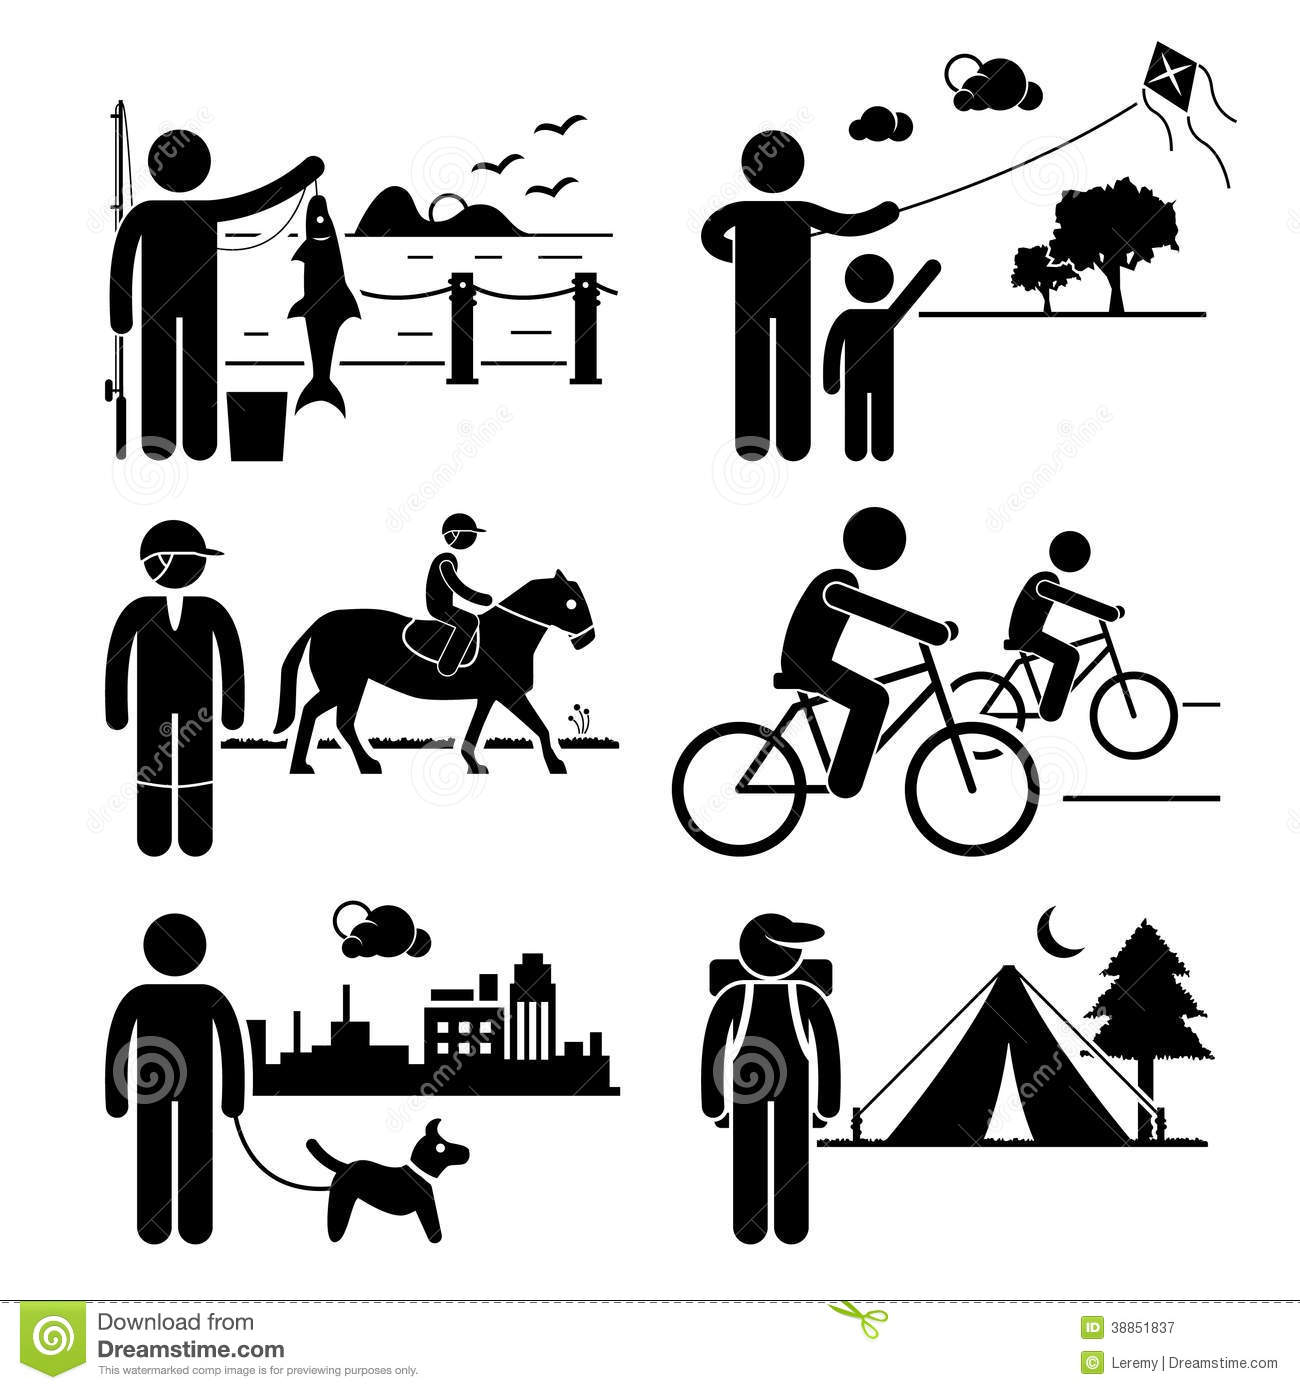 Dog Surfing Clipart Activities clipart royalty